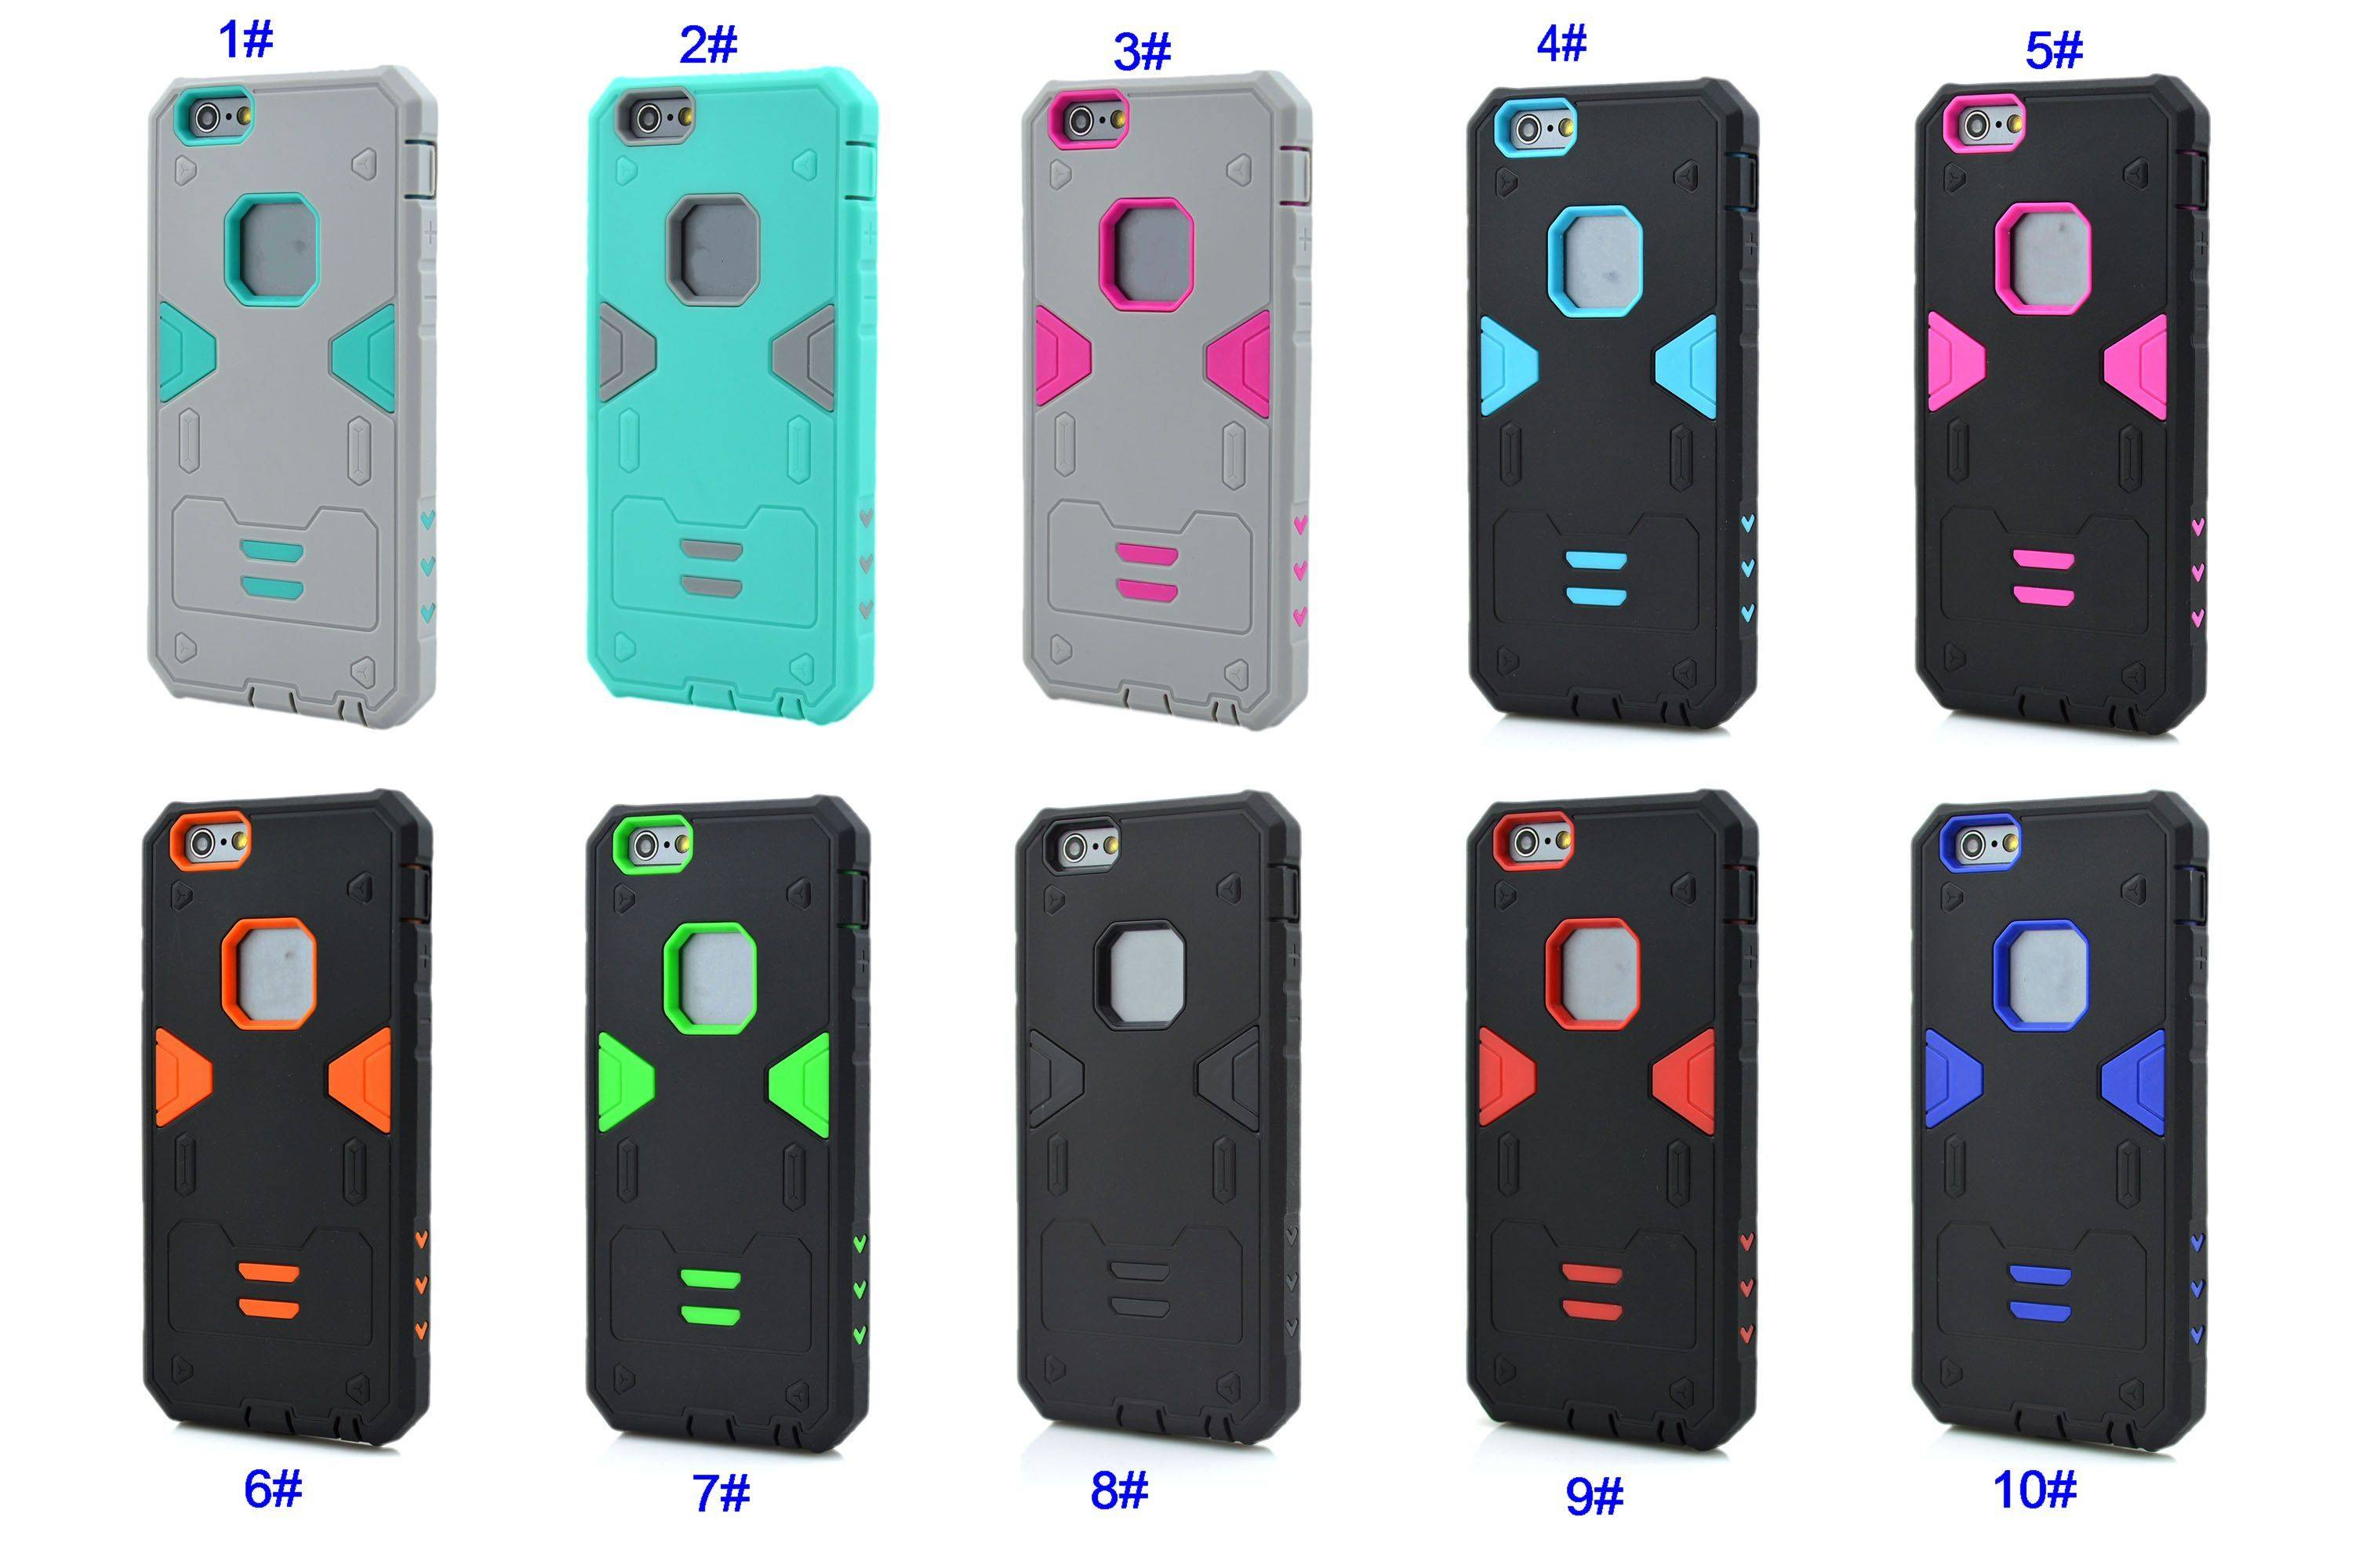 Shockproof Hybrid Rubber Armor Hard Case Heavy Duty Silicone Cover for iPhone 6 6S Plus IP6C131